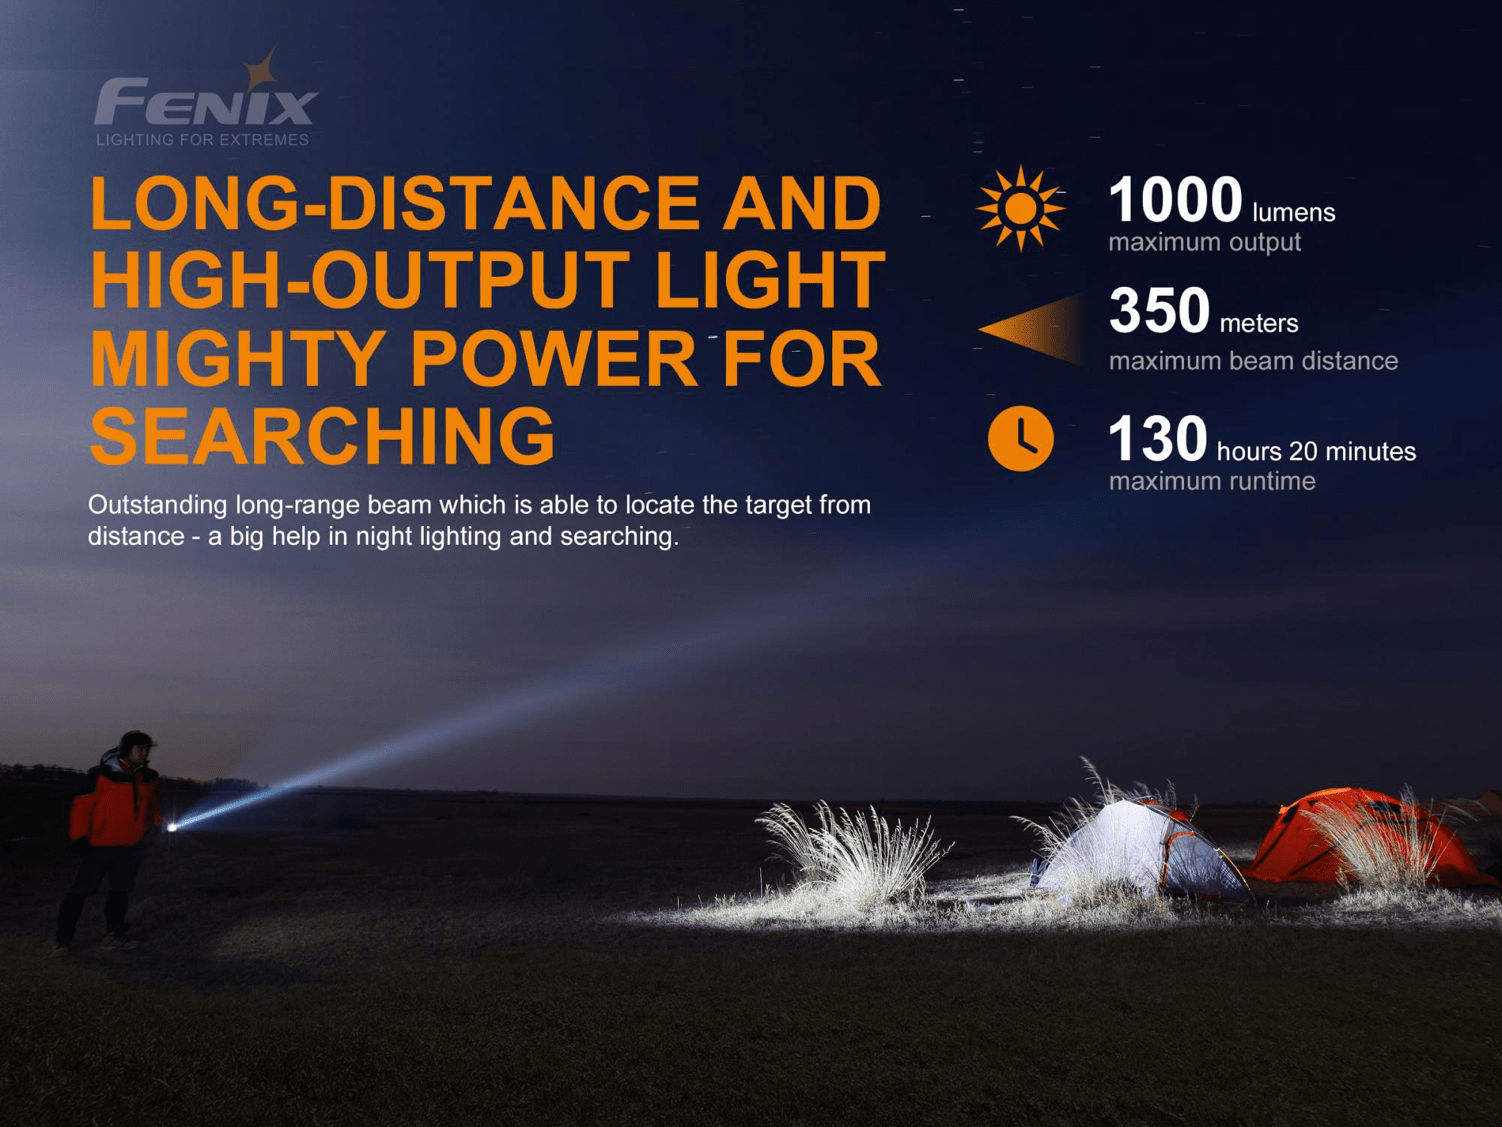 Fenix LD42 LED Flashlight | 1000 Lumens Lightweight, Compact & Powerful CoolWhite Flat Body for great grip (EDC/Work) LED Torch Light, Runs on 4*AA Alkaline Batteries (Included)